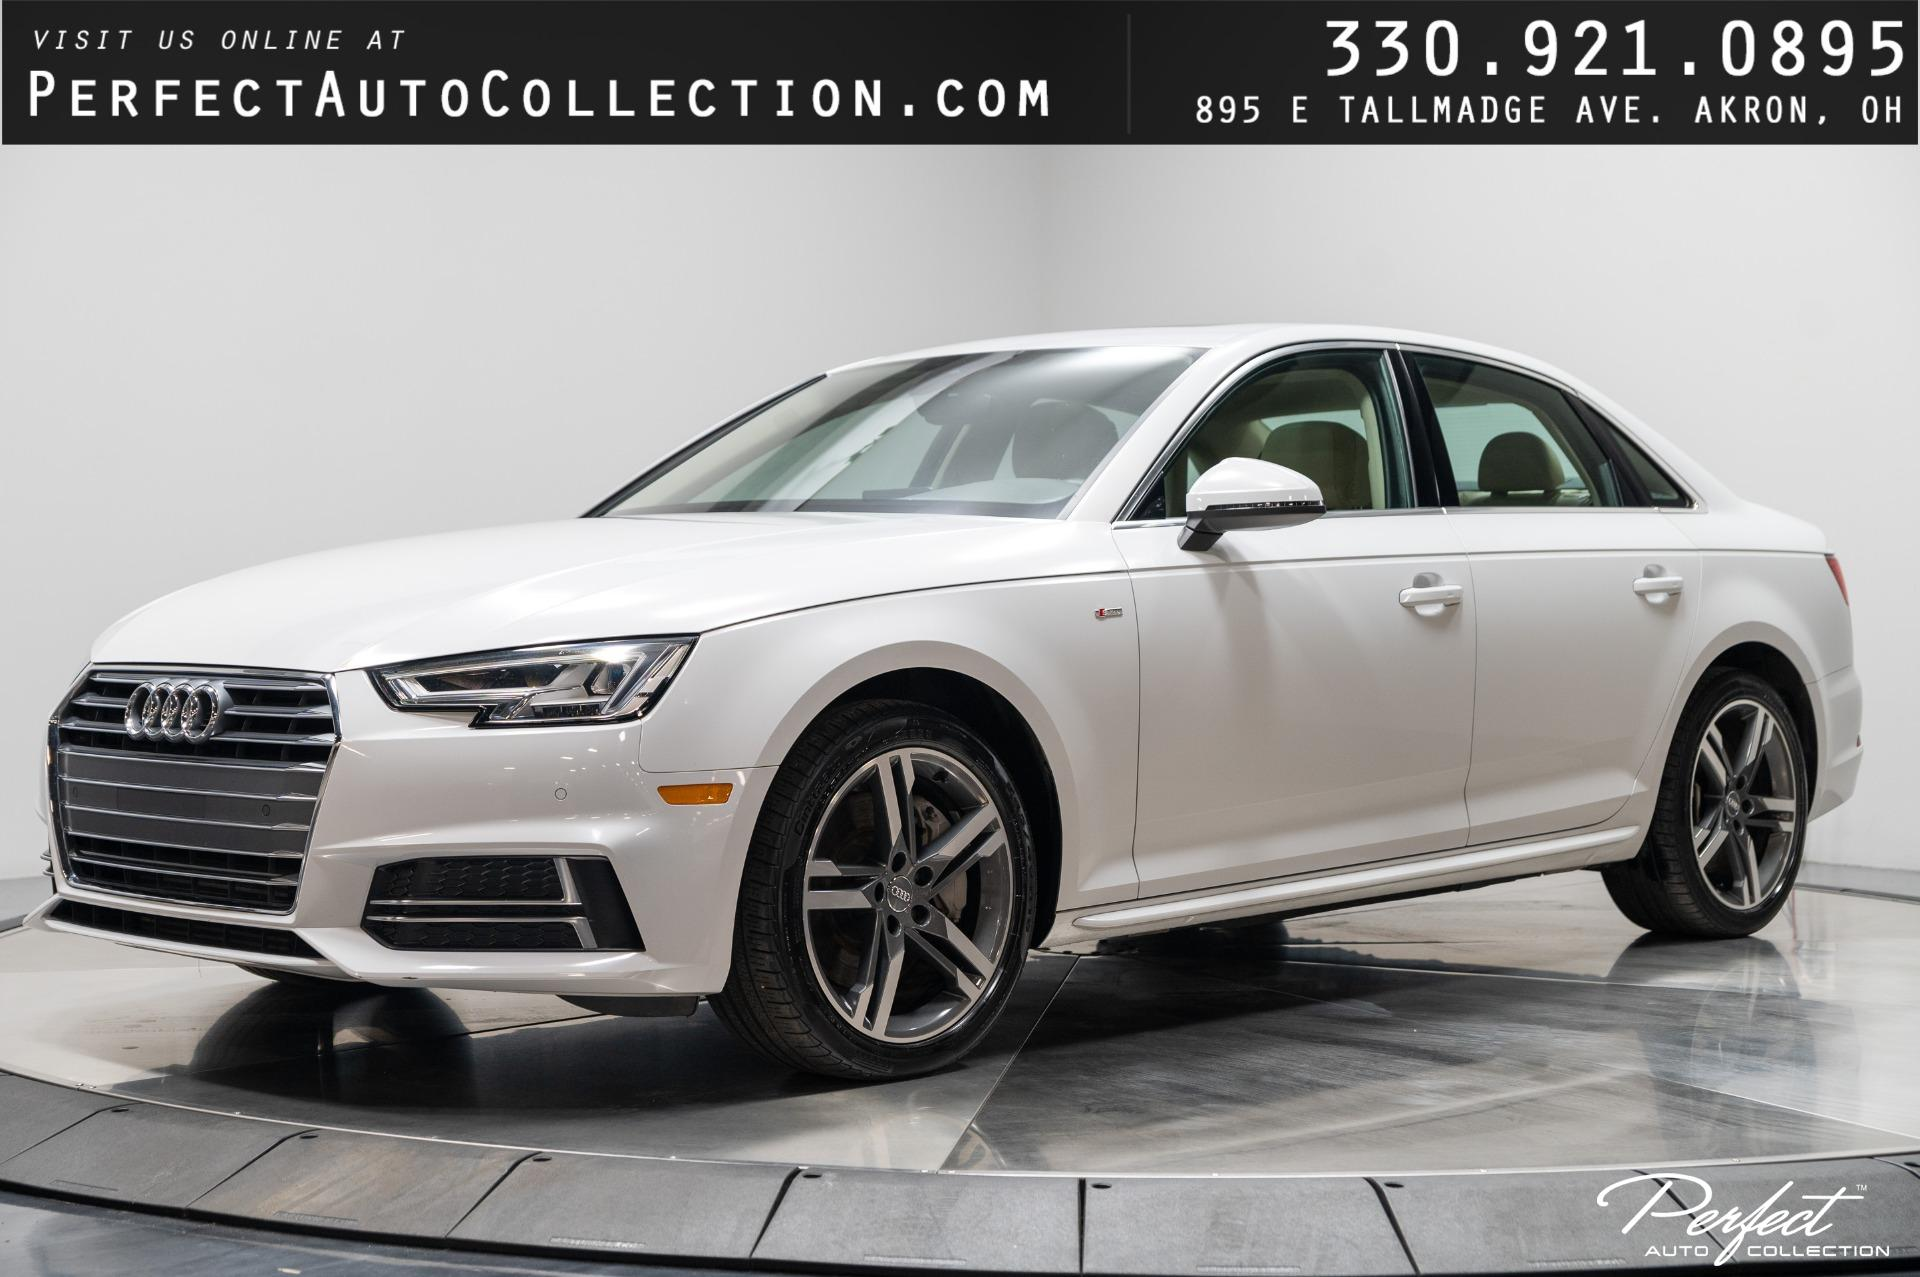 Used 2018 Audi A4 2.0T quattro Premium Plus for sale $29,795 at Perfect Auto Collection in Akron OH 44310 1